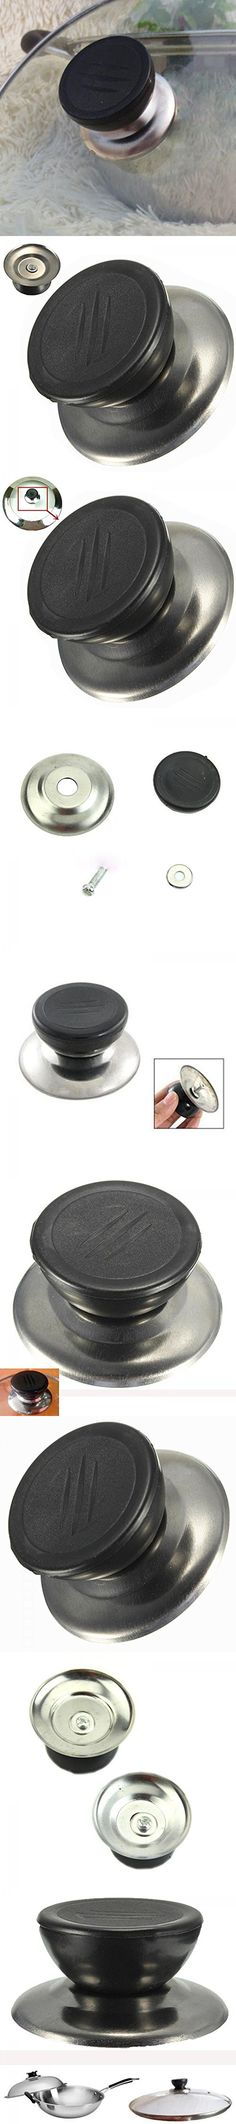 Genenic Pan Cover Lid Screw Hand Grip Cookware Pot Knob Replacement Handle